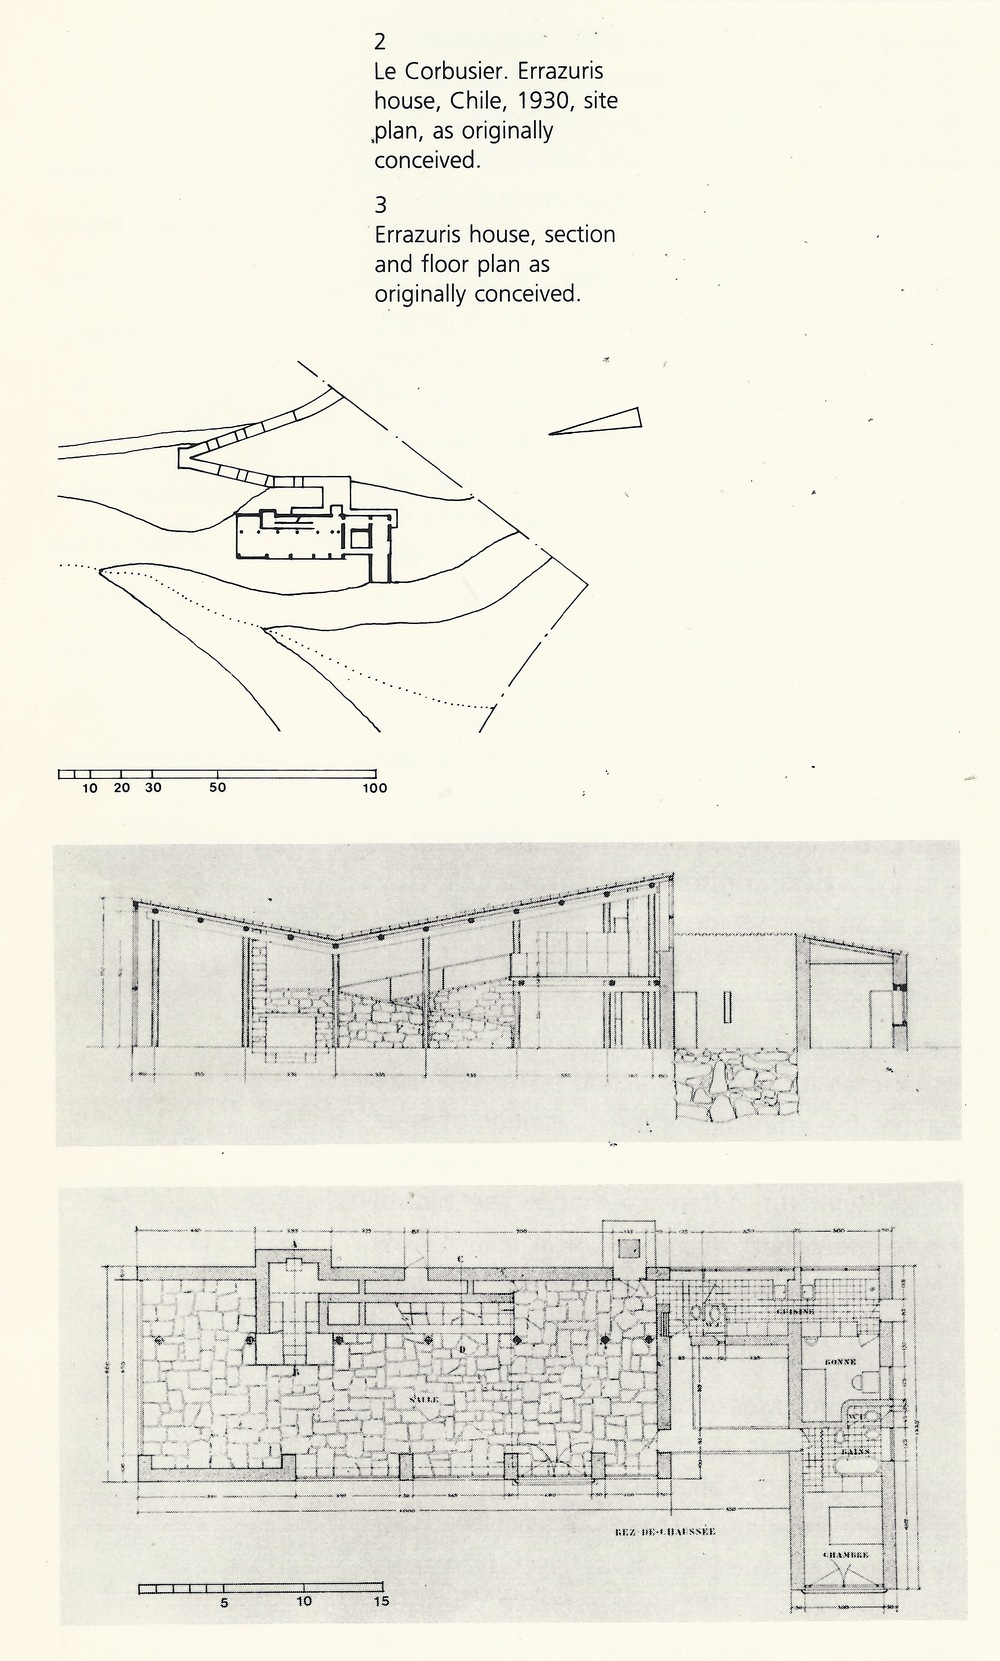 LeCorbusier's Errazuris house from  The Decorated Diagram